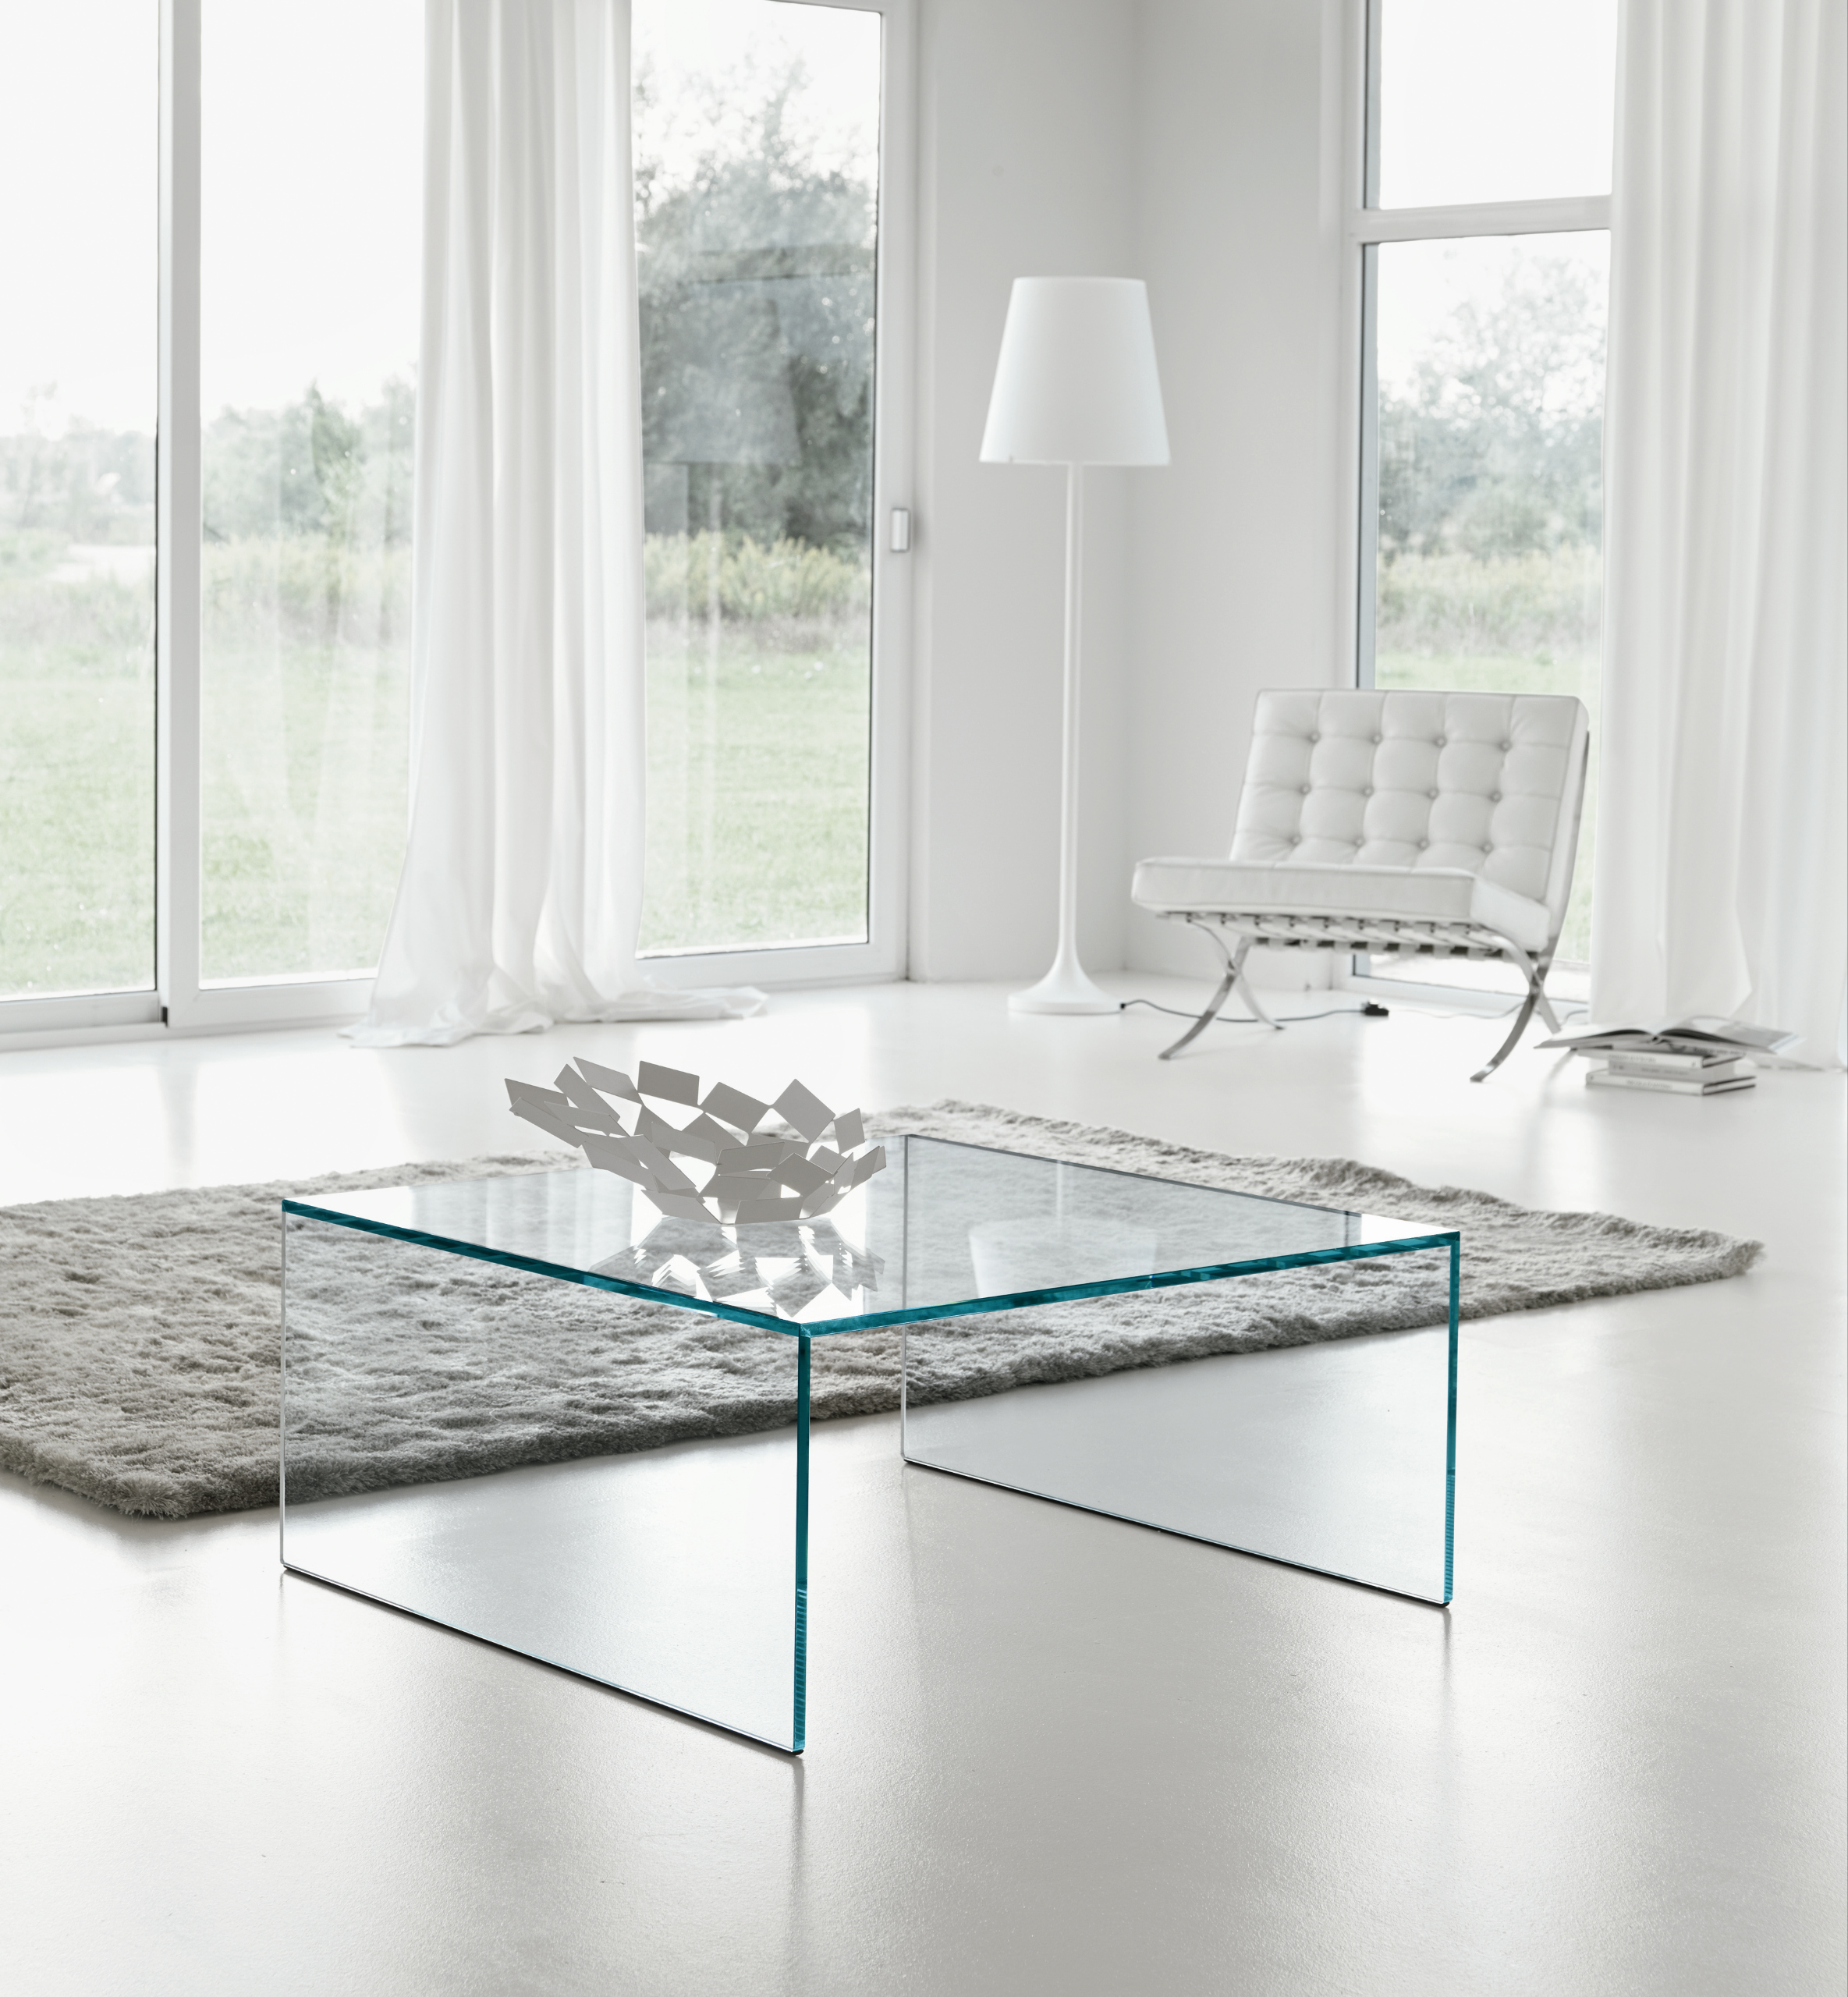 Table Basse En Verre Eden By T D Tonelli Design